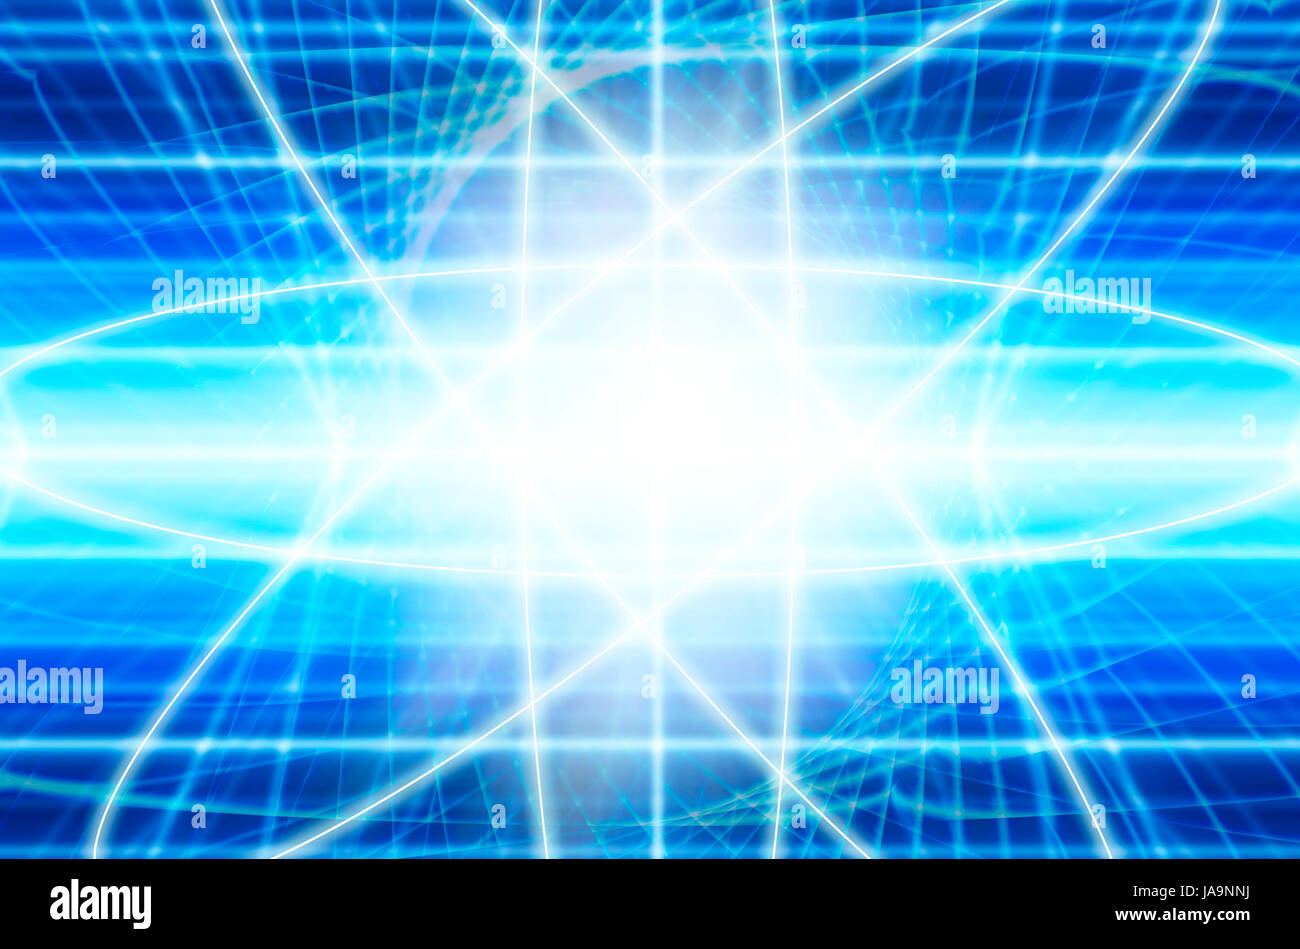 quantum physics and quantum computing concept - Stock Image